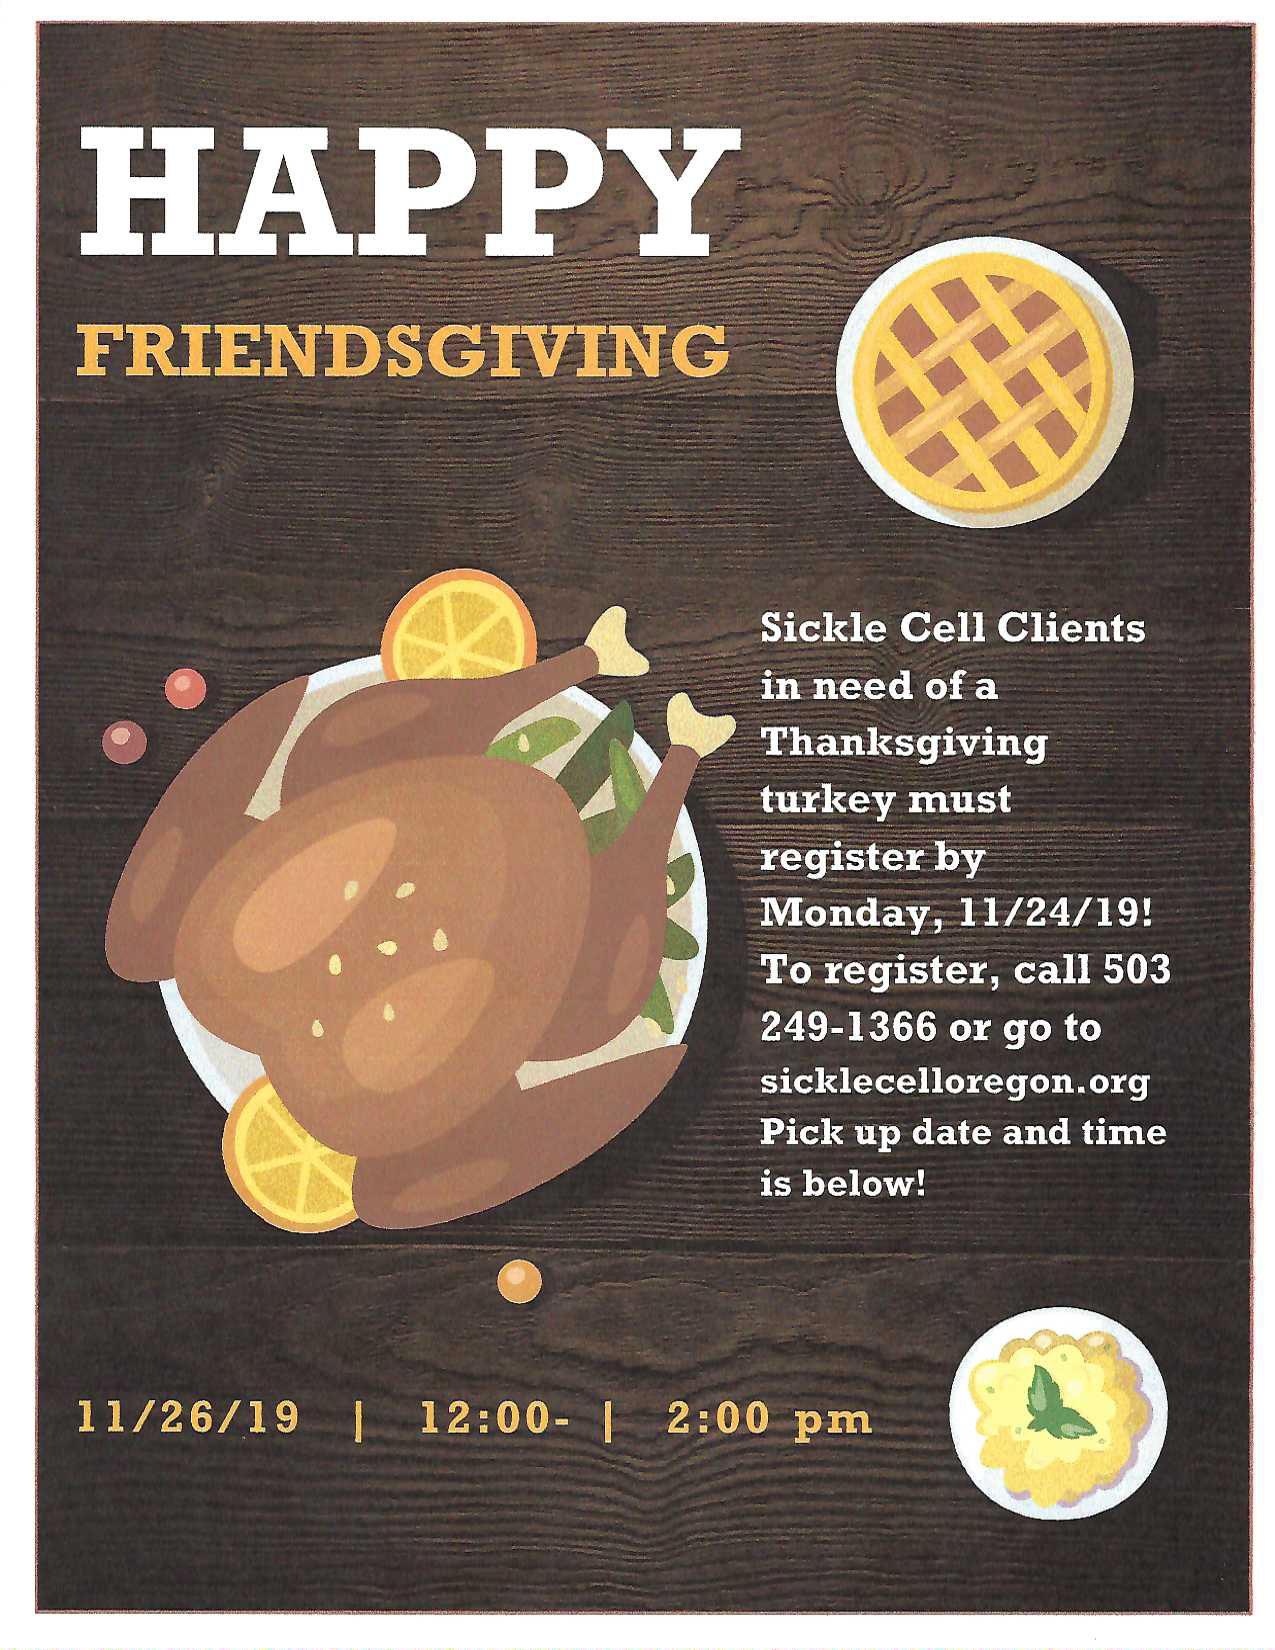 SCAFO Thanksgiving Giveaway. Sickle Cell clients in need of a Thanksgiving turkey must register by Monday, 11/24/19! To Register, call 503 249 1366 or go to sicklecelloregon.org. Pick up is on November 26, 2019, 12-2PM